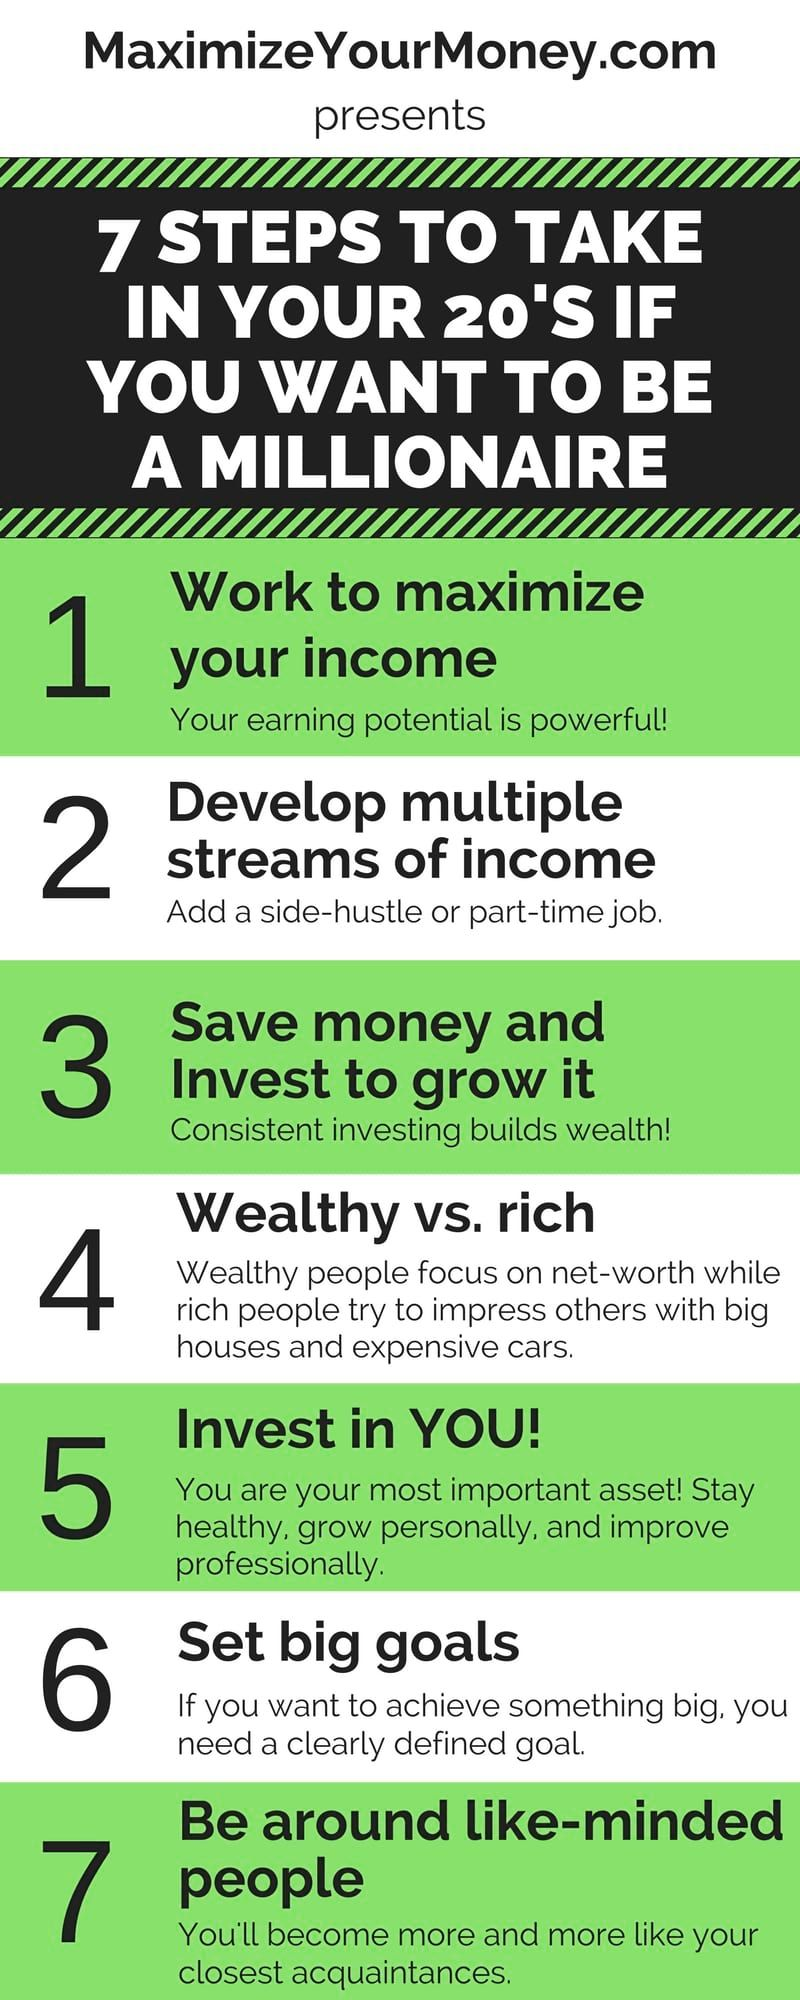 7 solid millennial money tips to achieve millionaire status